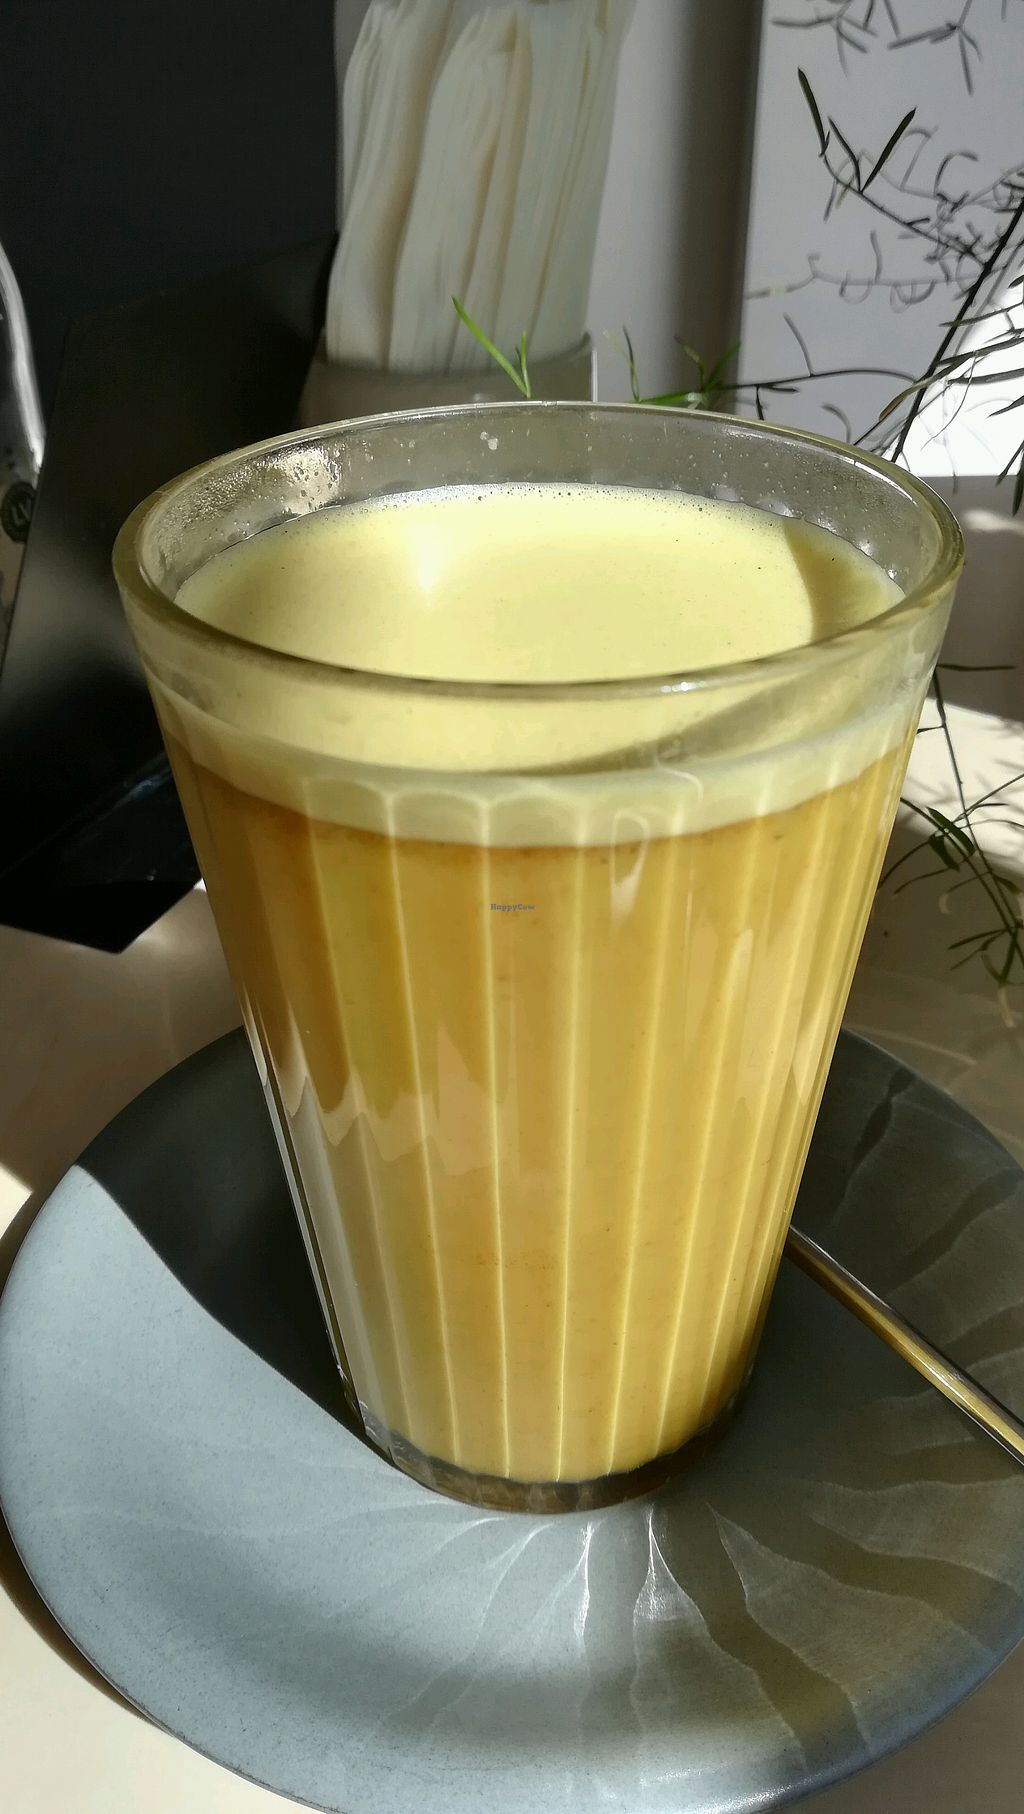 "Photo of Terapija  by <a href=""/members/profile/GreenGarnet"">GreenGarnet</a> <br/>Turmeric latte  <br/> April 21, 2018  - <a href='/contact/abuse/image/75403/388998'>Report</a>"